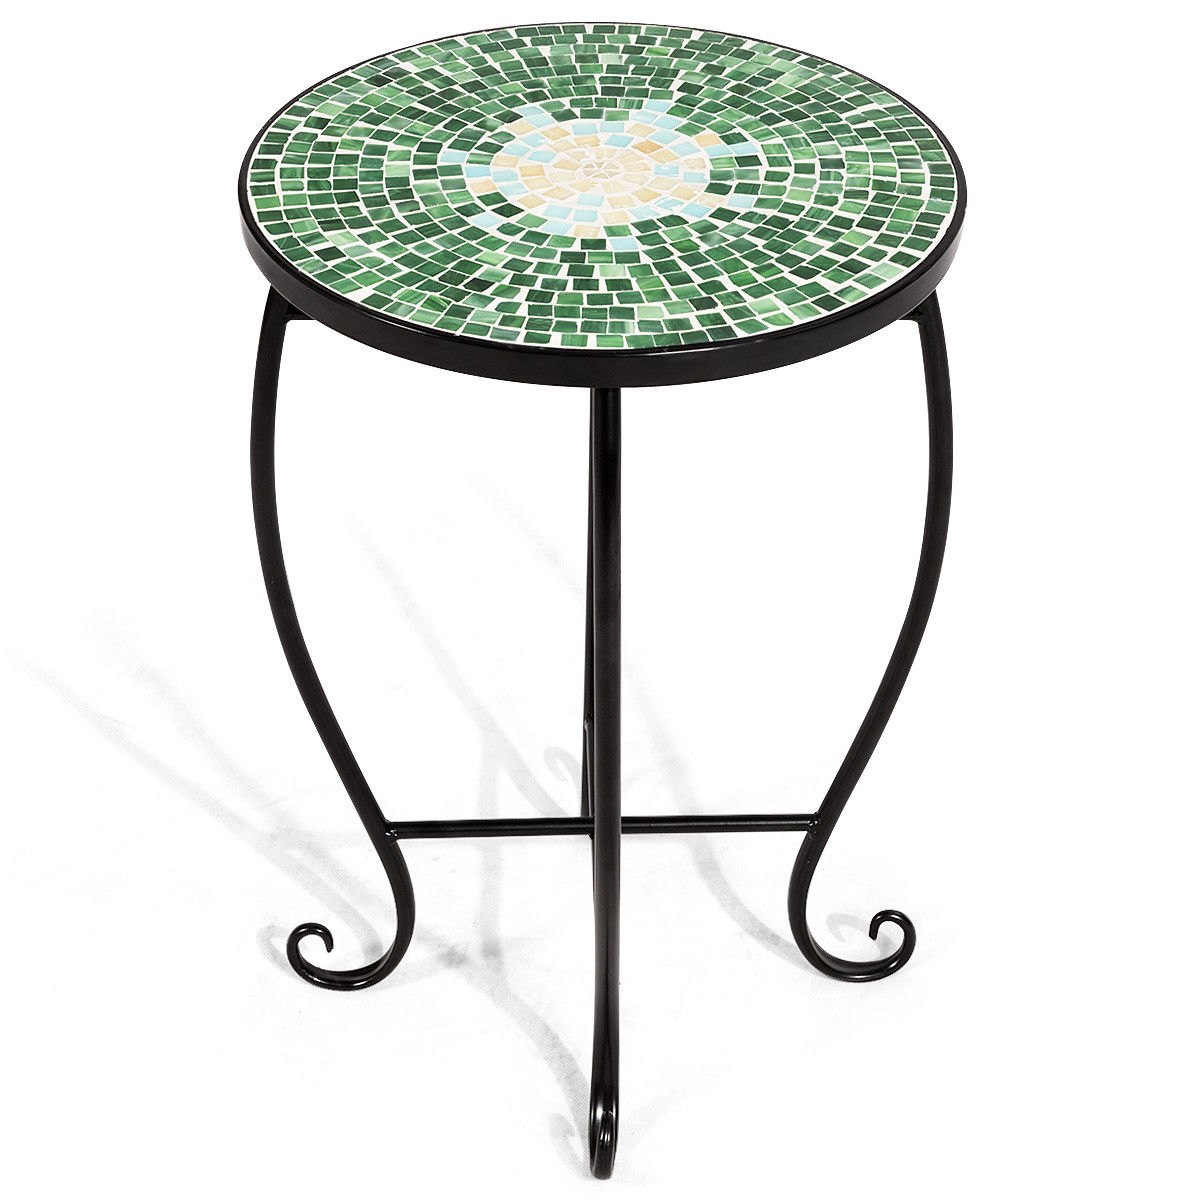 way outdoor indoor accent table plant stand scheme green metal garden steel ethan allen windsor chairs teal chest home goods floor lamps inch high end piece chair set drum throne